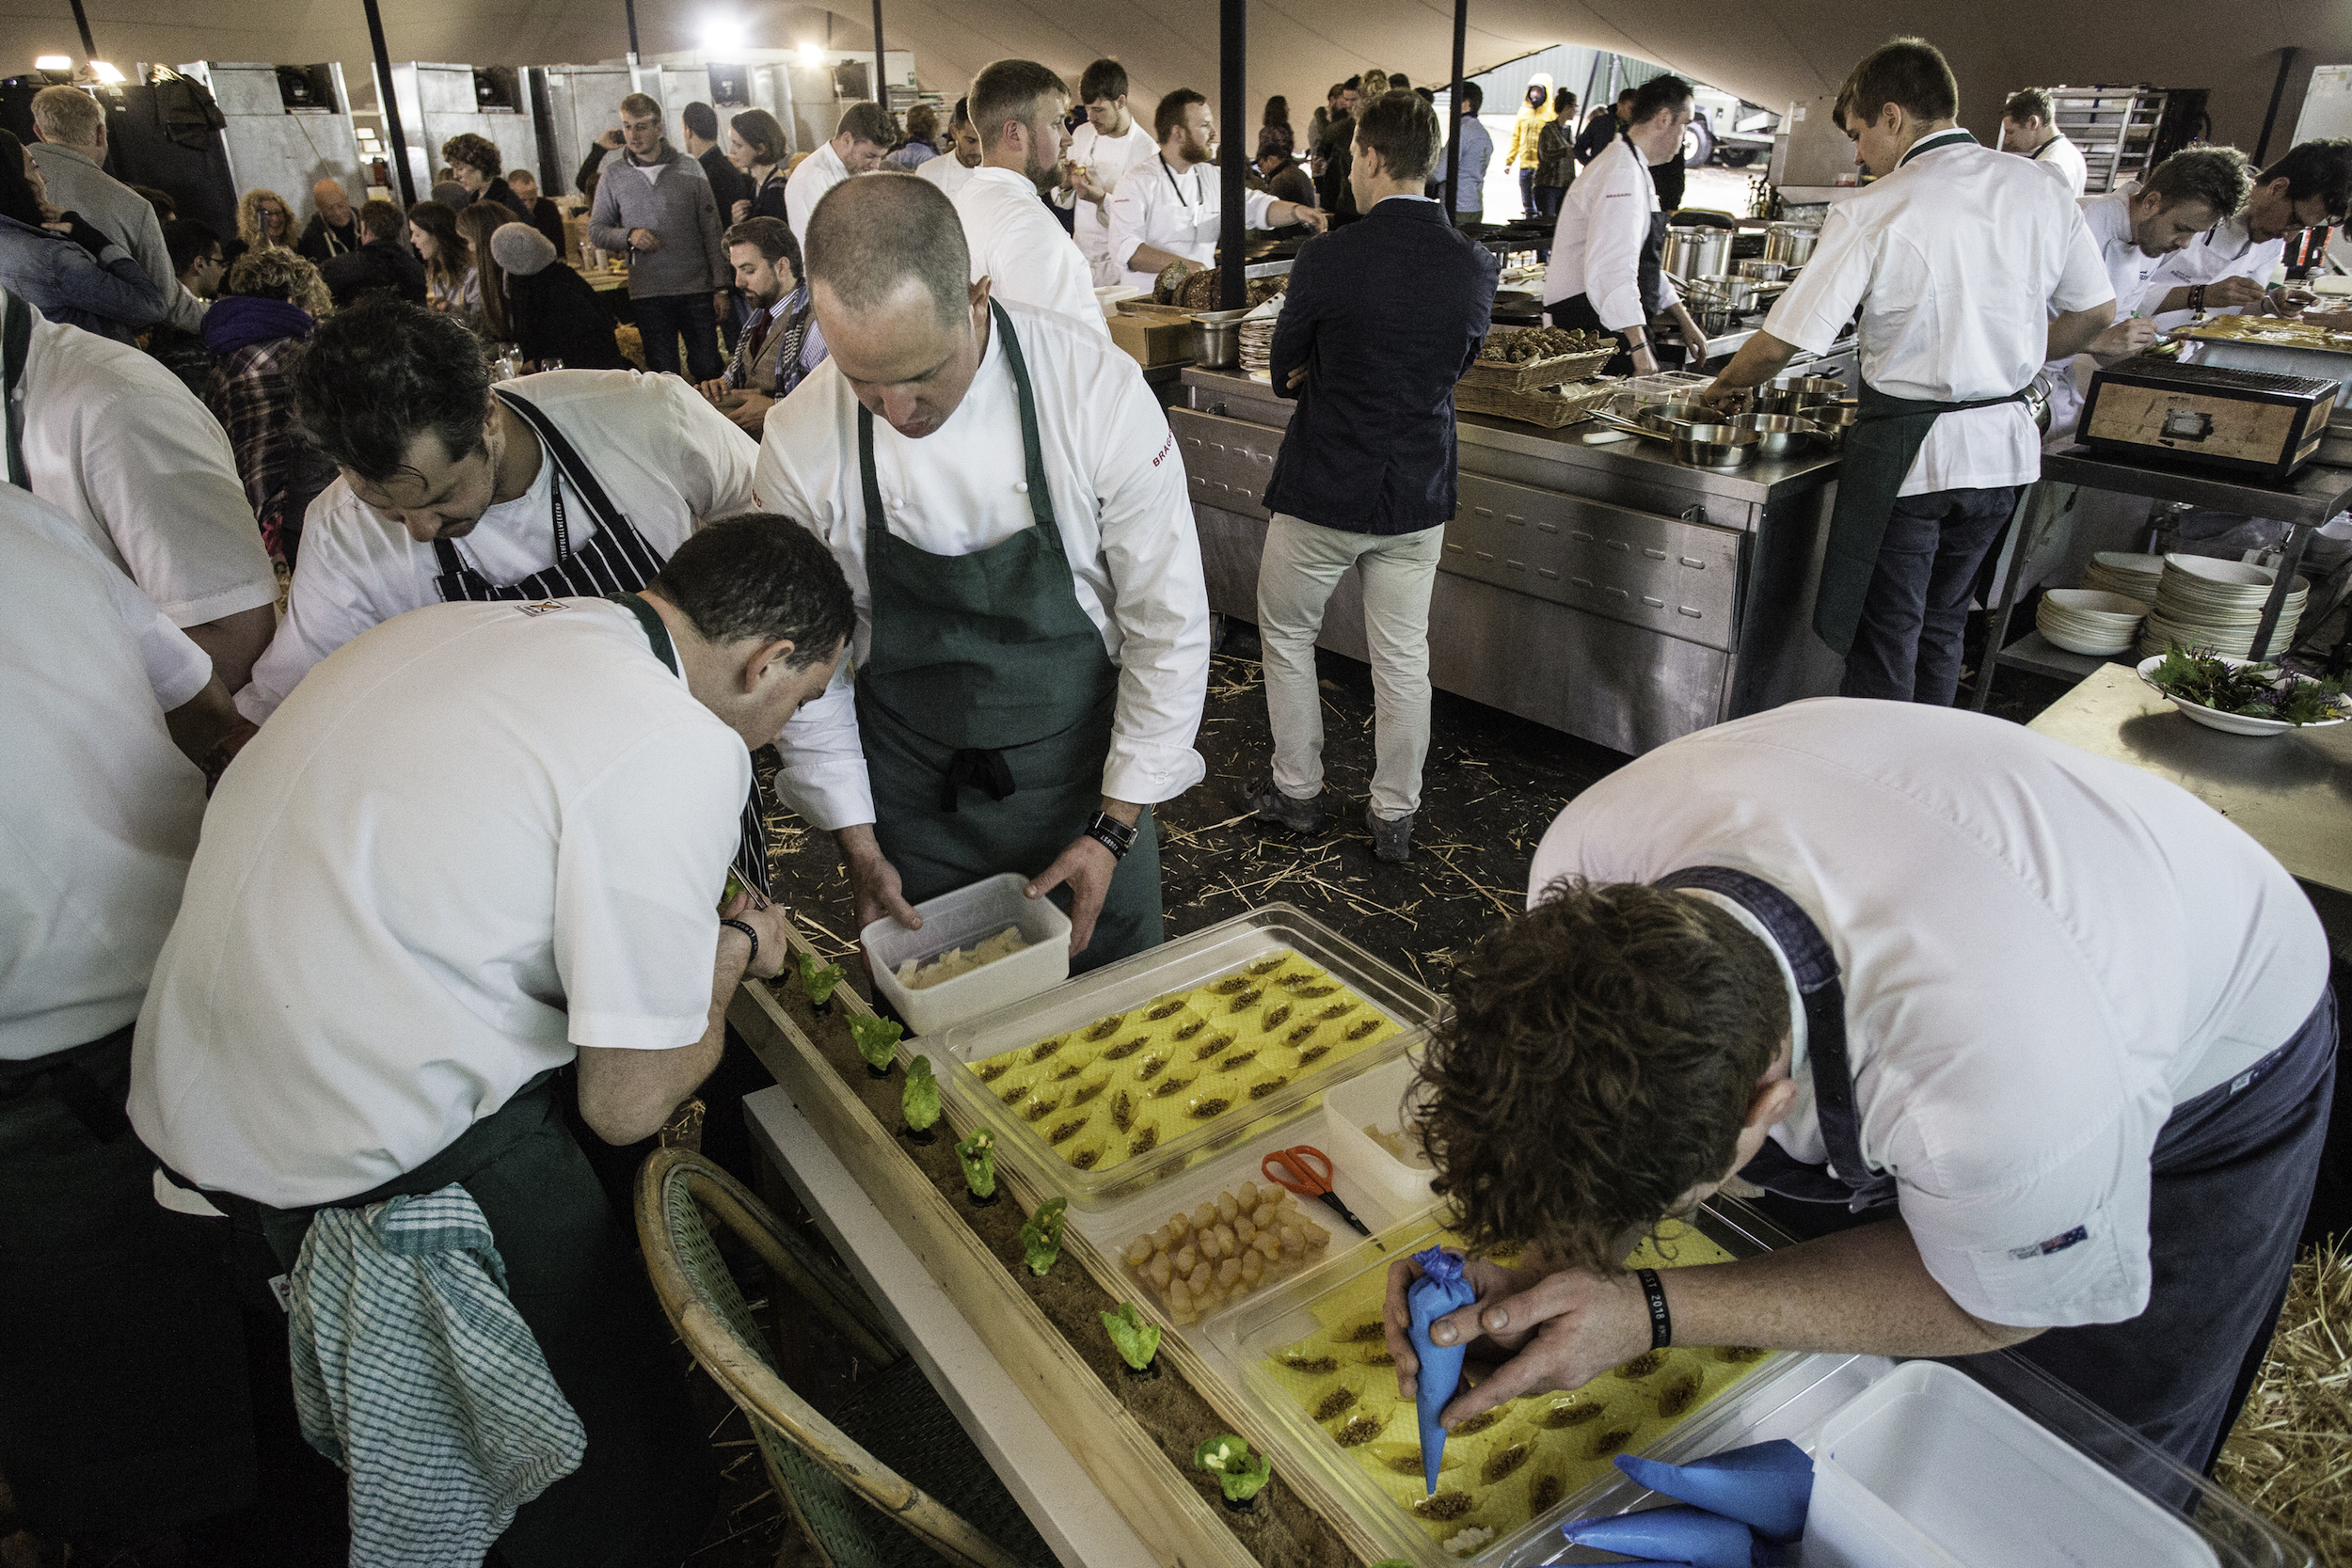 CHEFS + RESTAURANTS - Dining, Collaborating, Challenging, Discussing